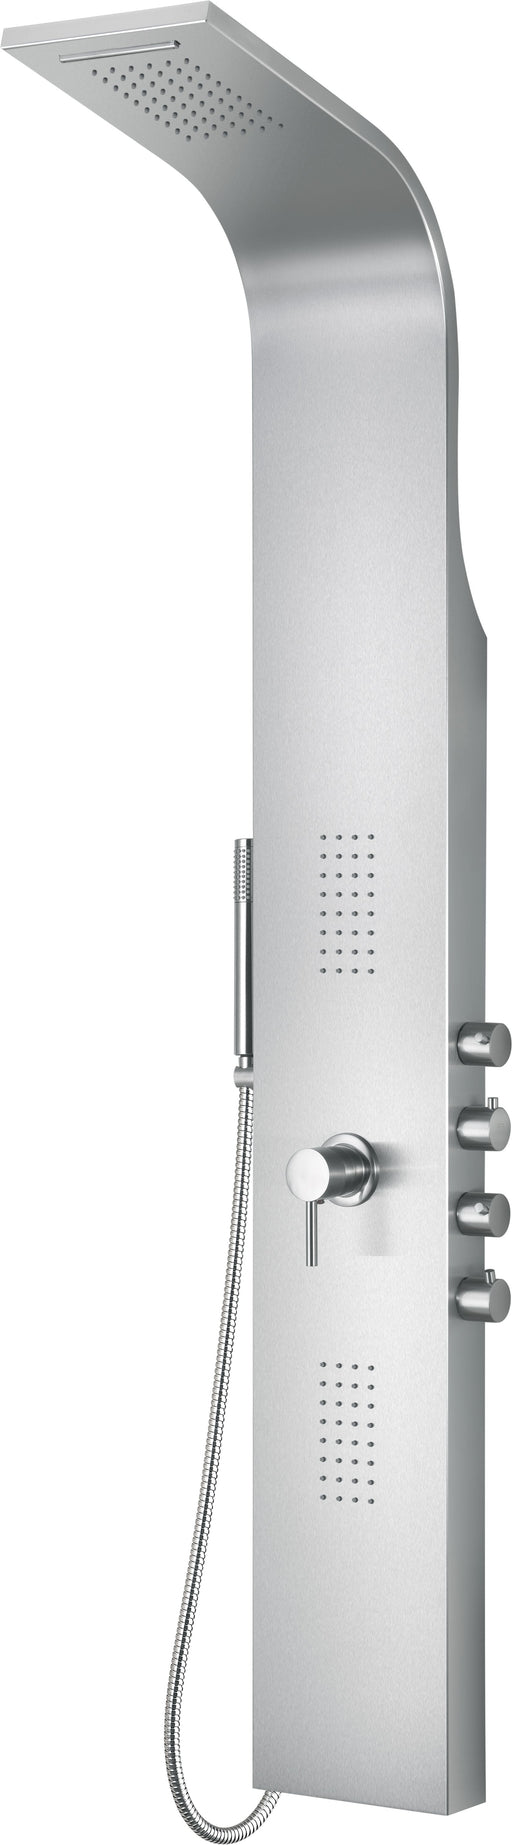 Alfi Brand ABSP30 Modern Stainless Steel Shower Panel with 2 Body Sprays-DirectSinks